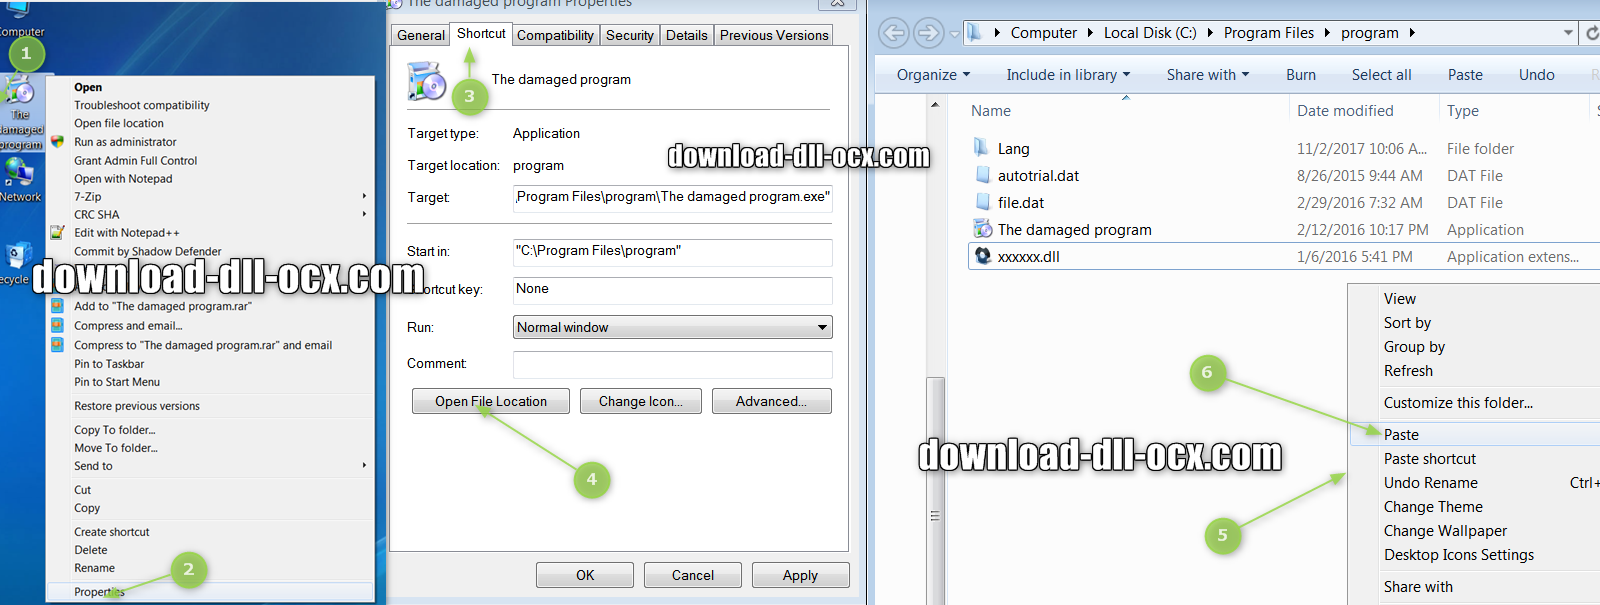 how to install AccessibleMarshal.dll file? for fix missing